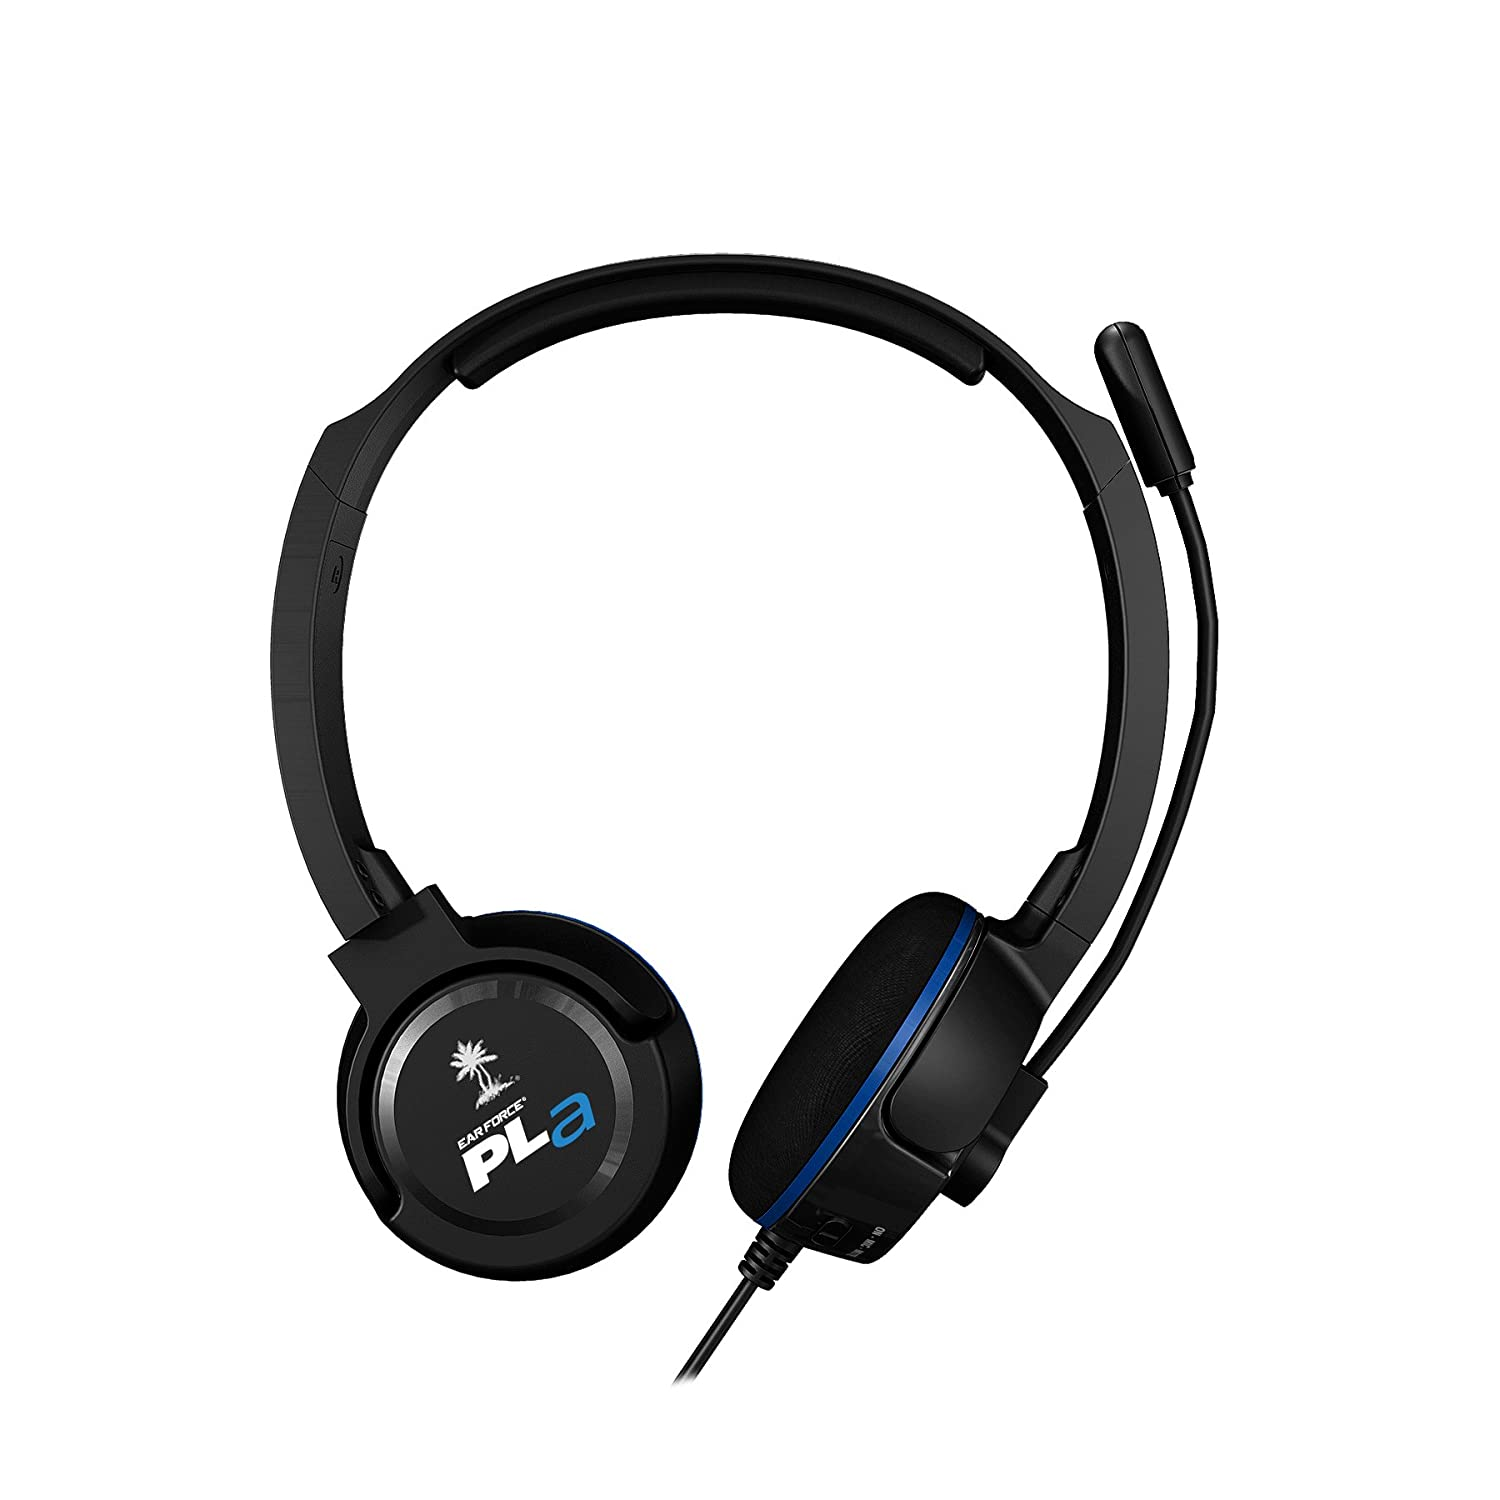 At under $25, the Turtle Beach Ear Force PLa is a very good headset for ps4